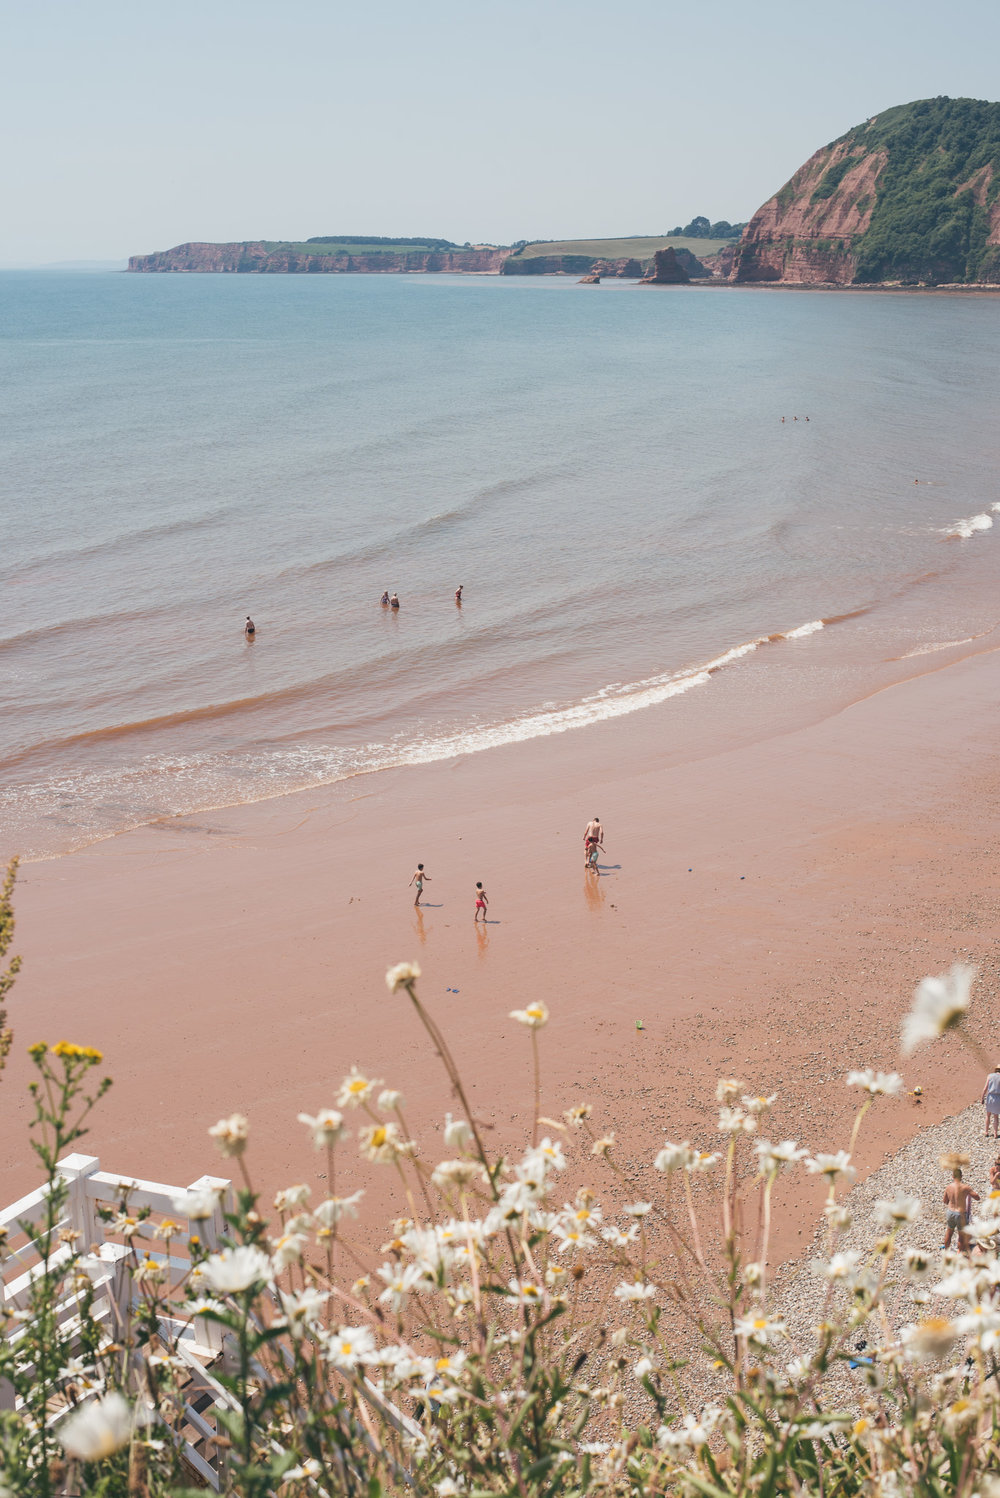 I love being by the sea so my beach photos from the summer make an appearance!